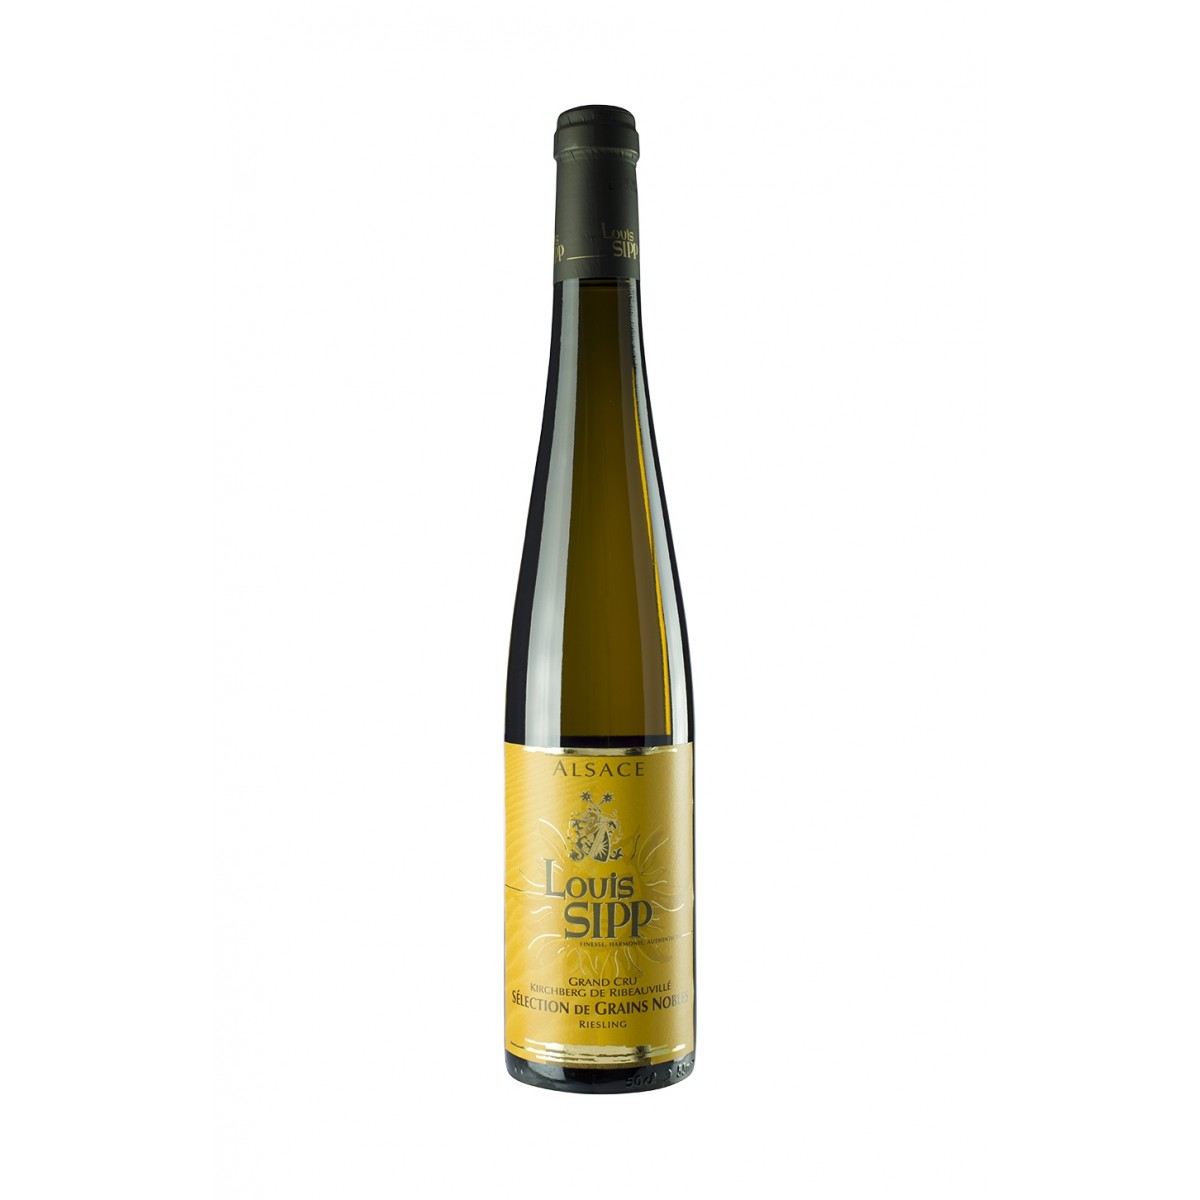 Riesling Kirchberg Grand Cru Selection de Grains Nobles 2006 - Louis Sipp